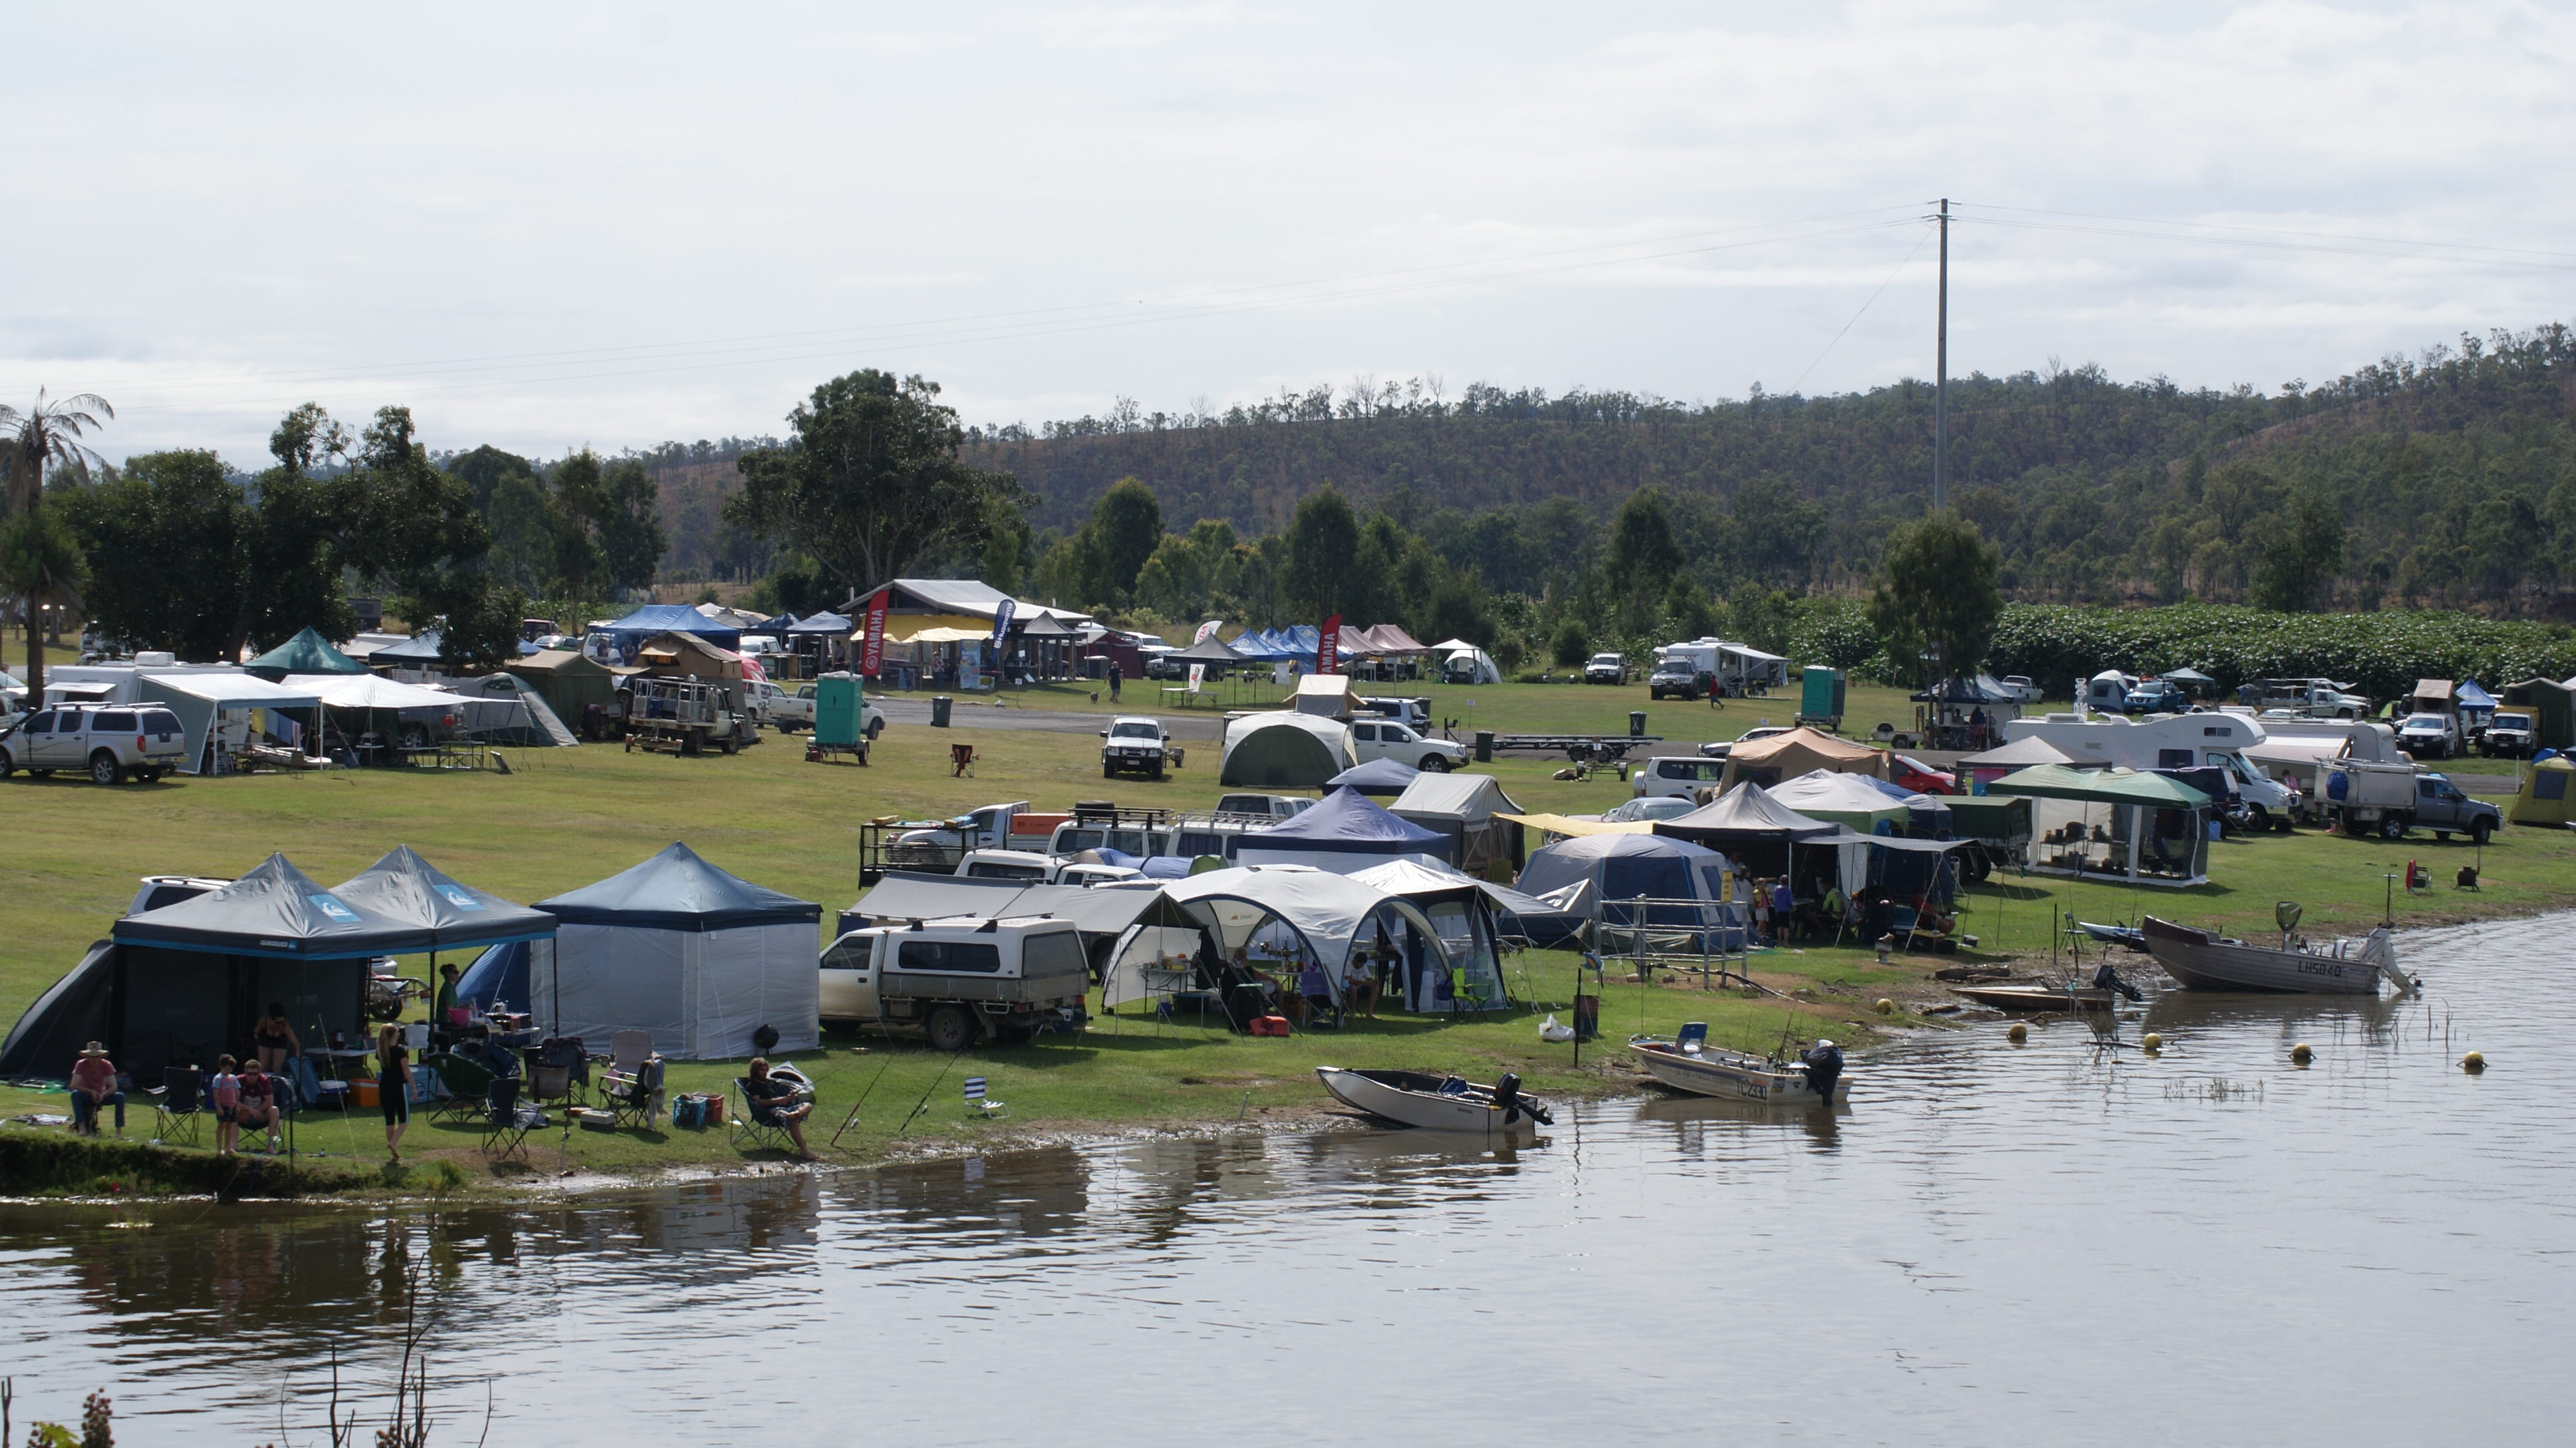 Mingo Crossing was a popular camping spot over the weekend.